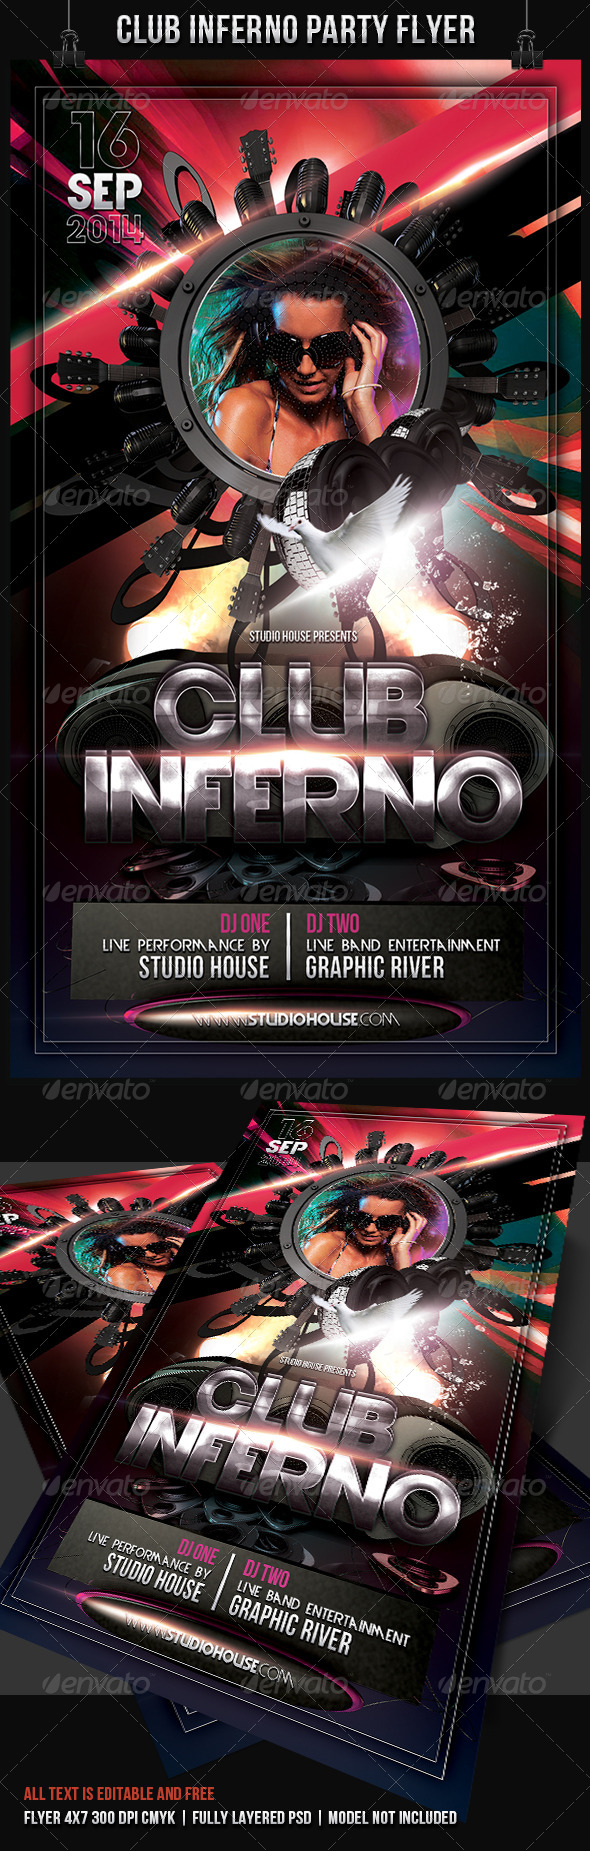 Club Inferno Party Flyer